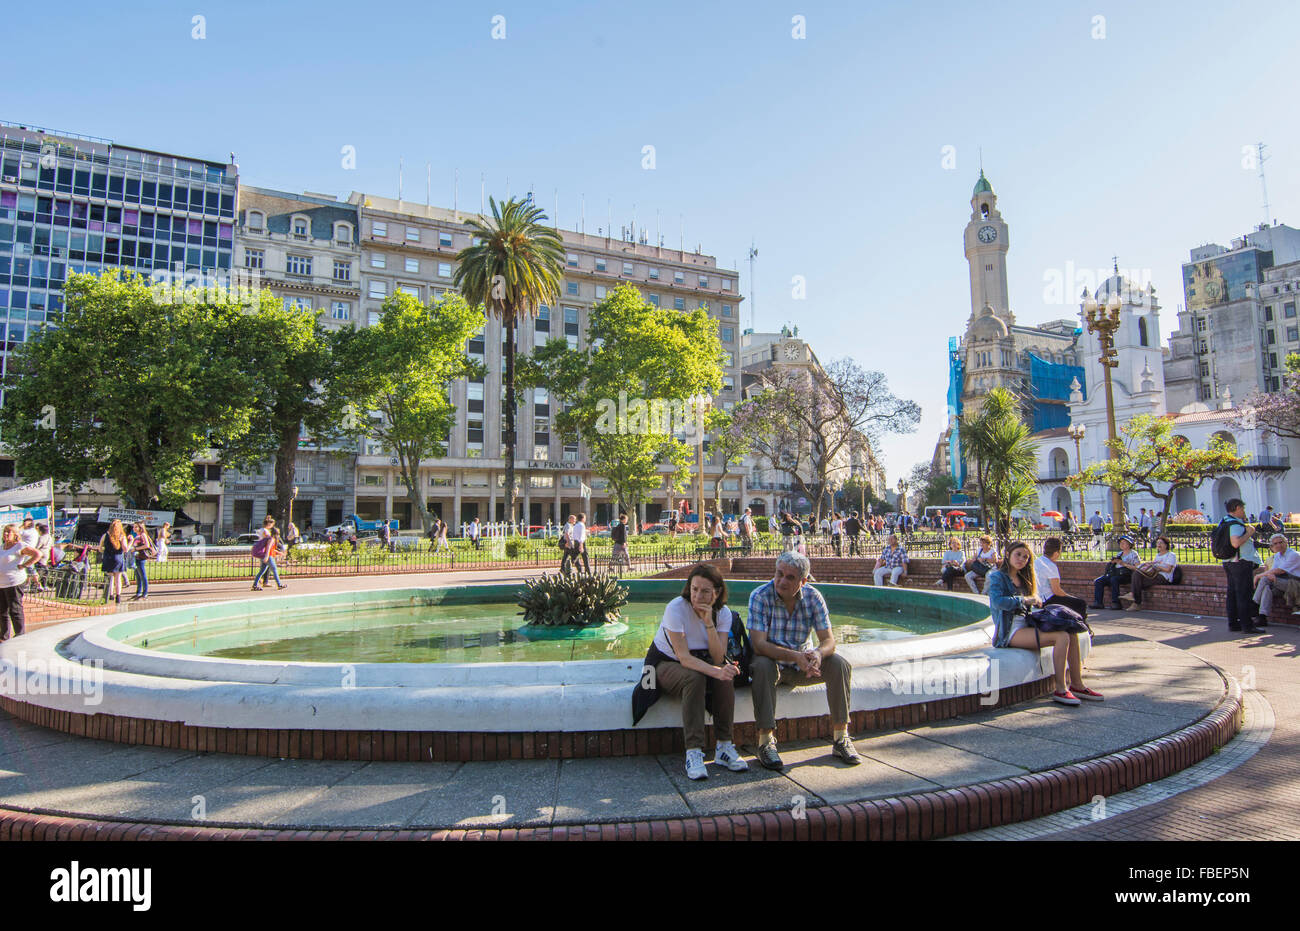 Buenos Aires Argentina Plaza de Mayo people sitting on fountain in main square of city center - Stock Image